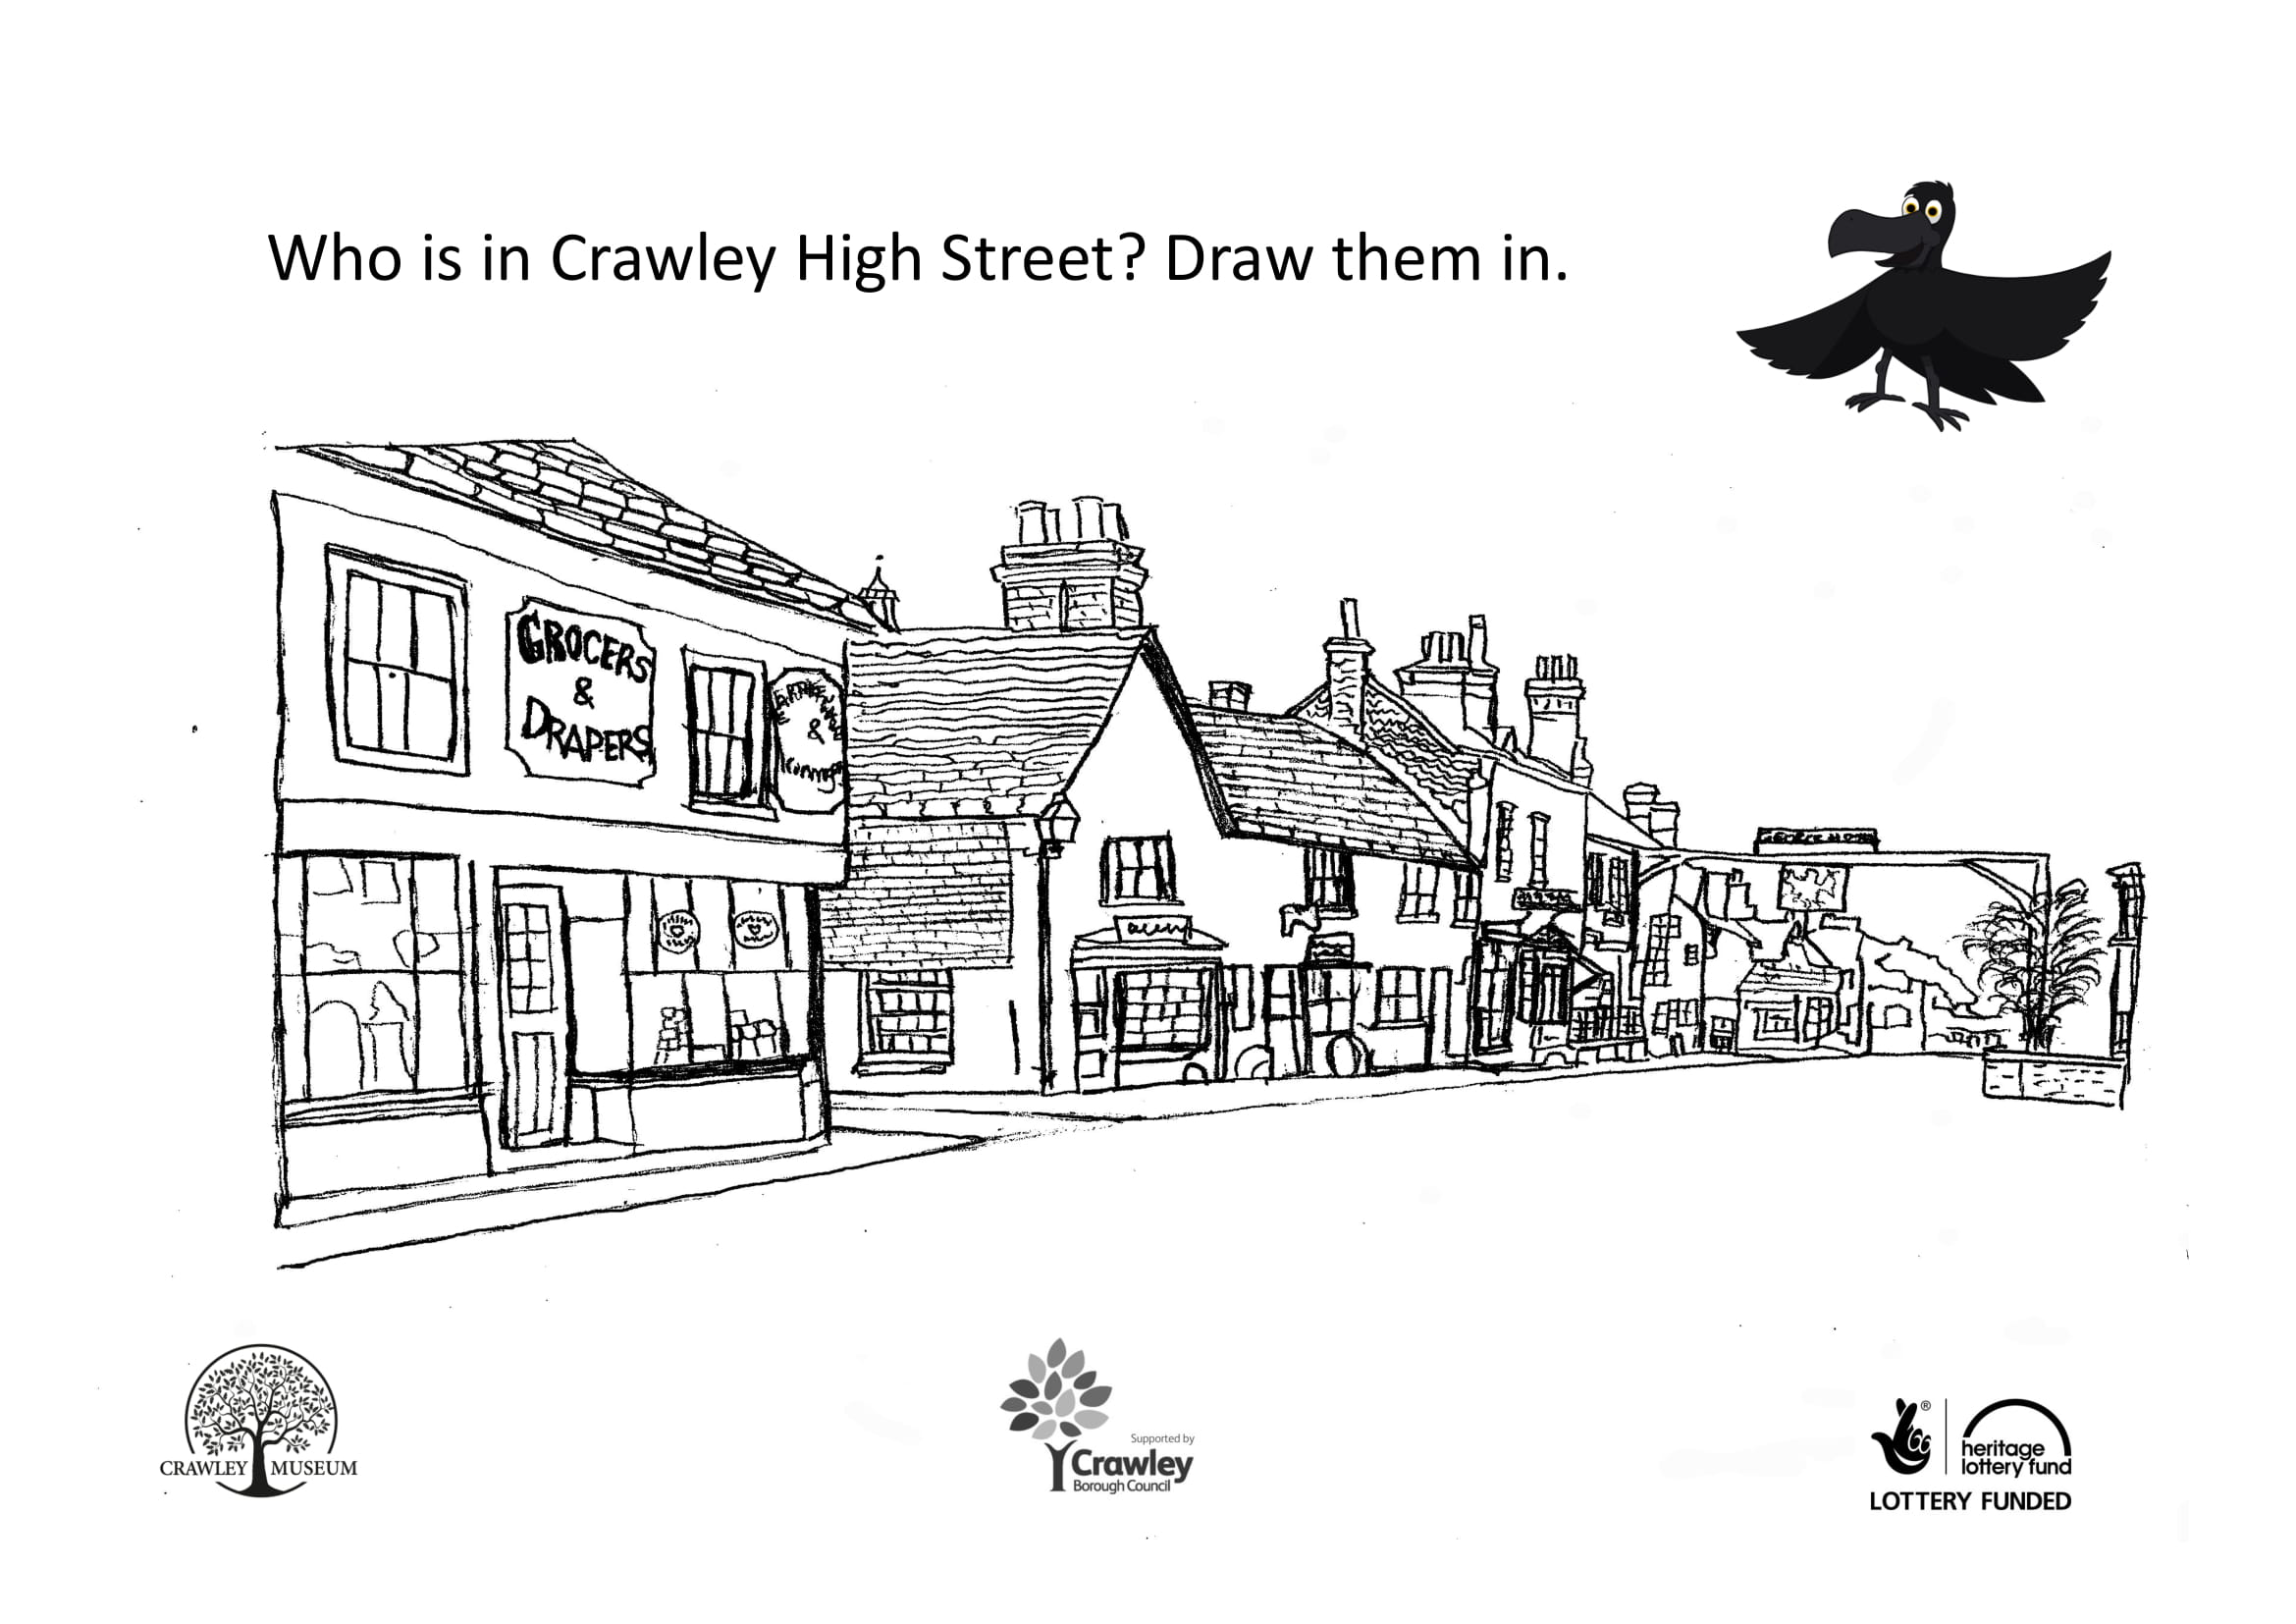 Line drawing of Crawley High Street